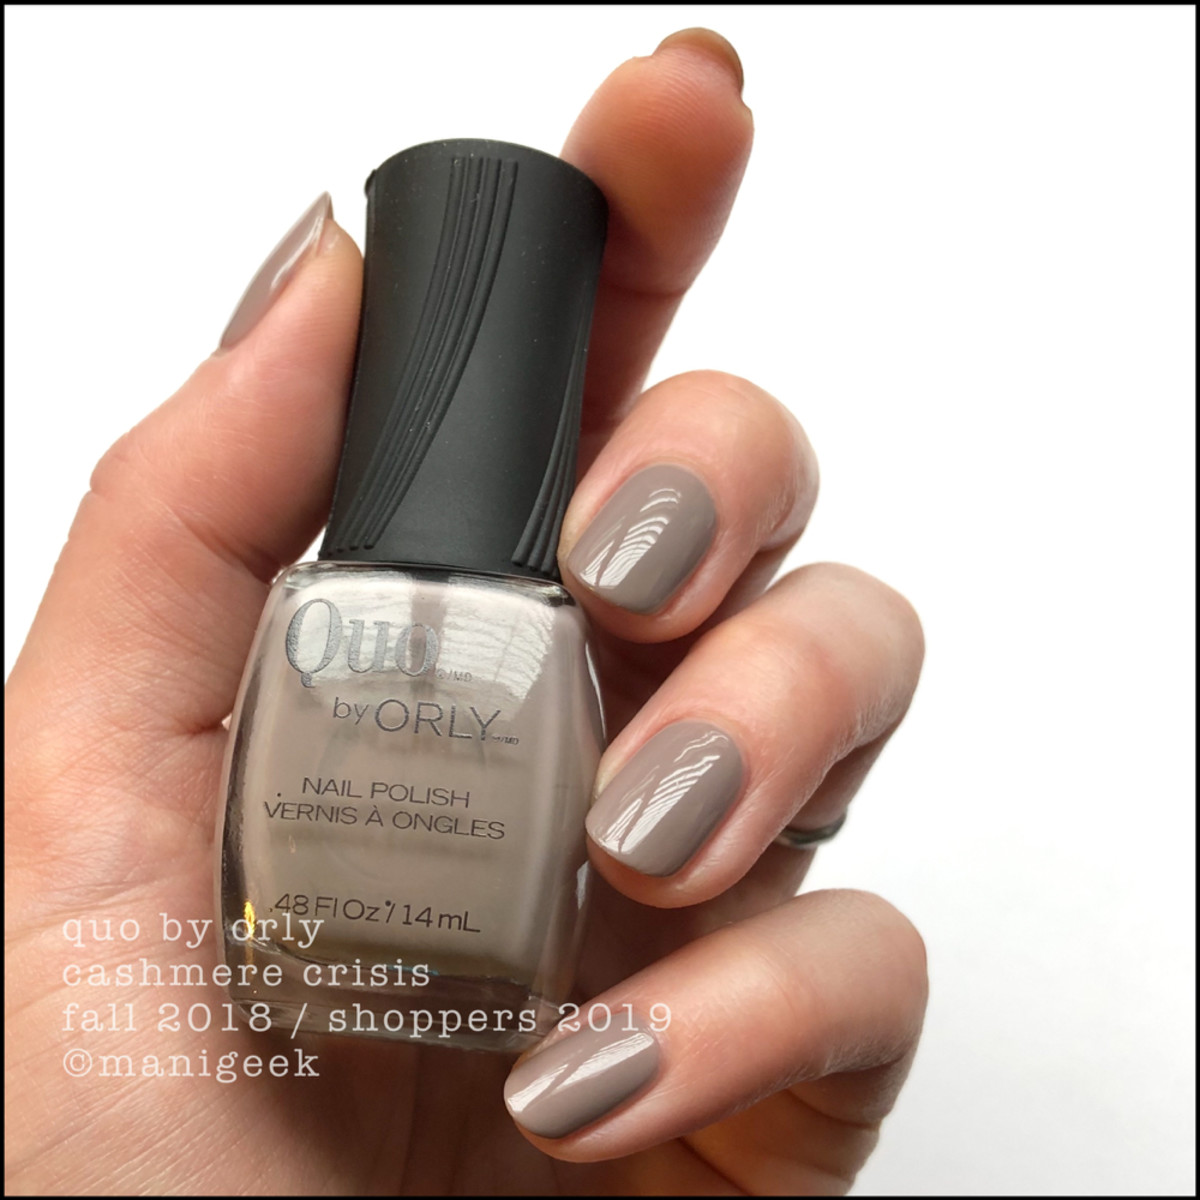 Quo by Orly Cashmere Crisis Fall 2018